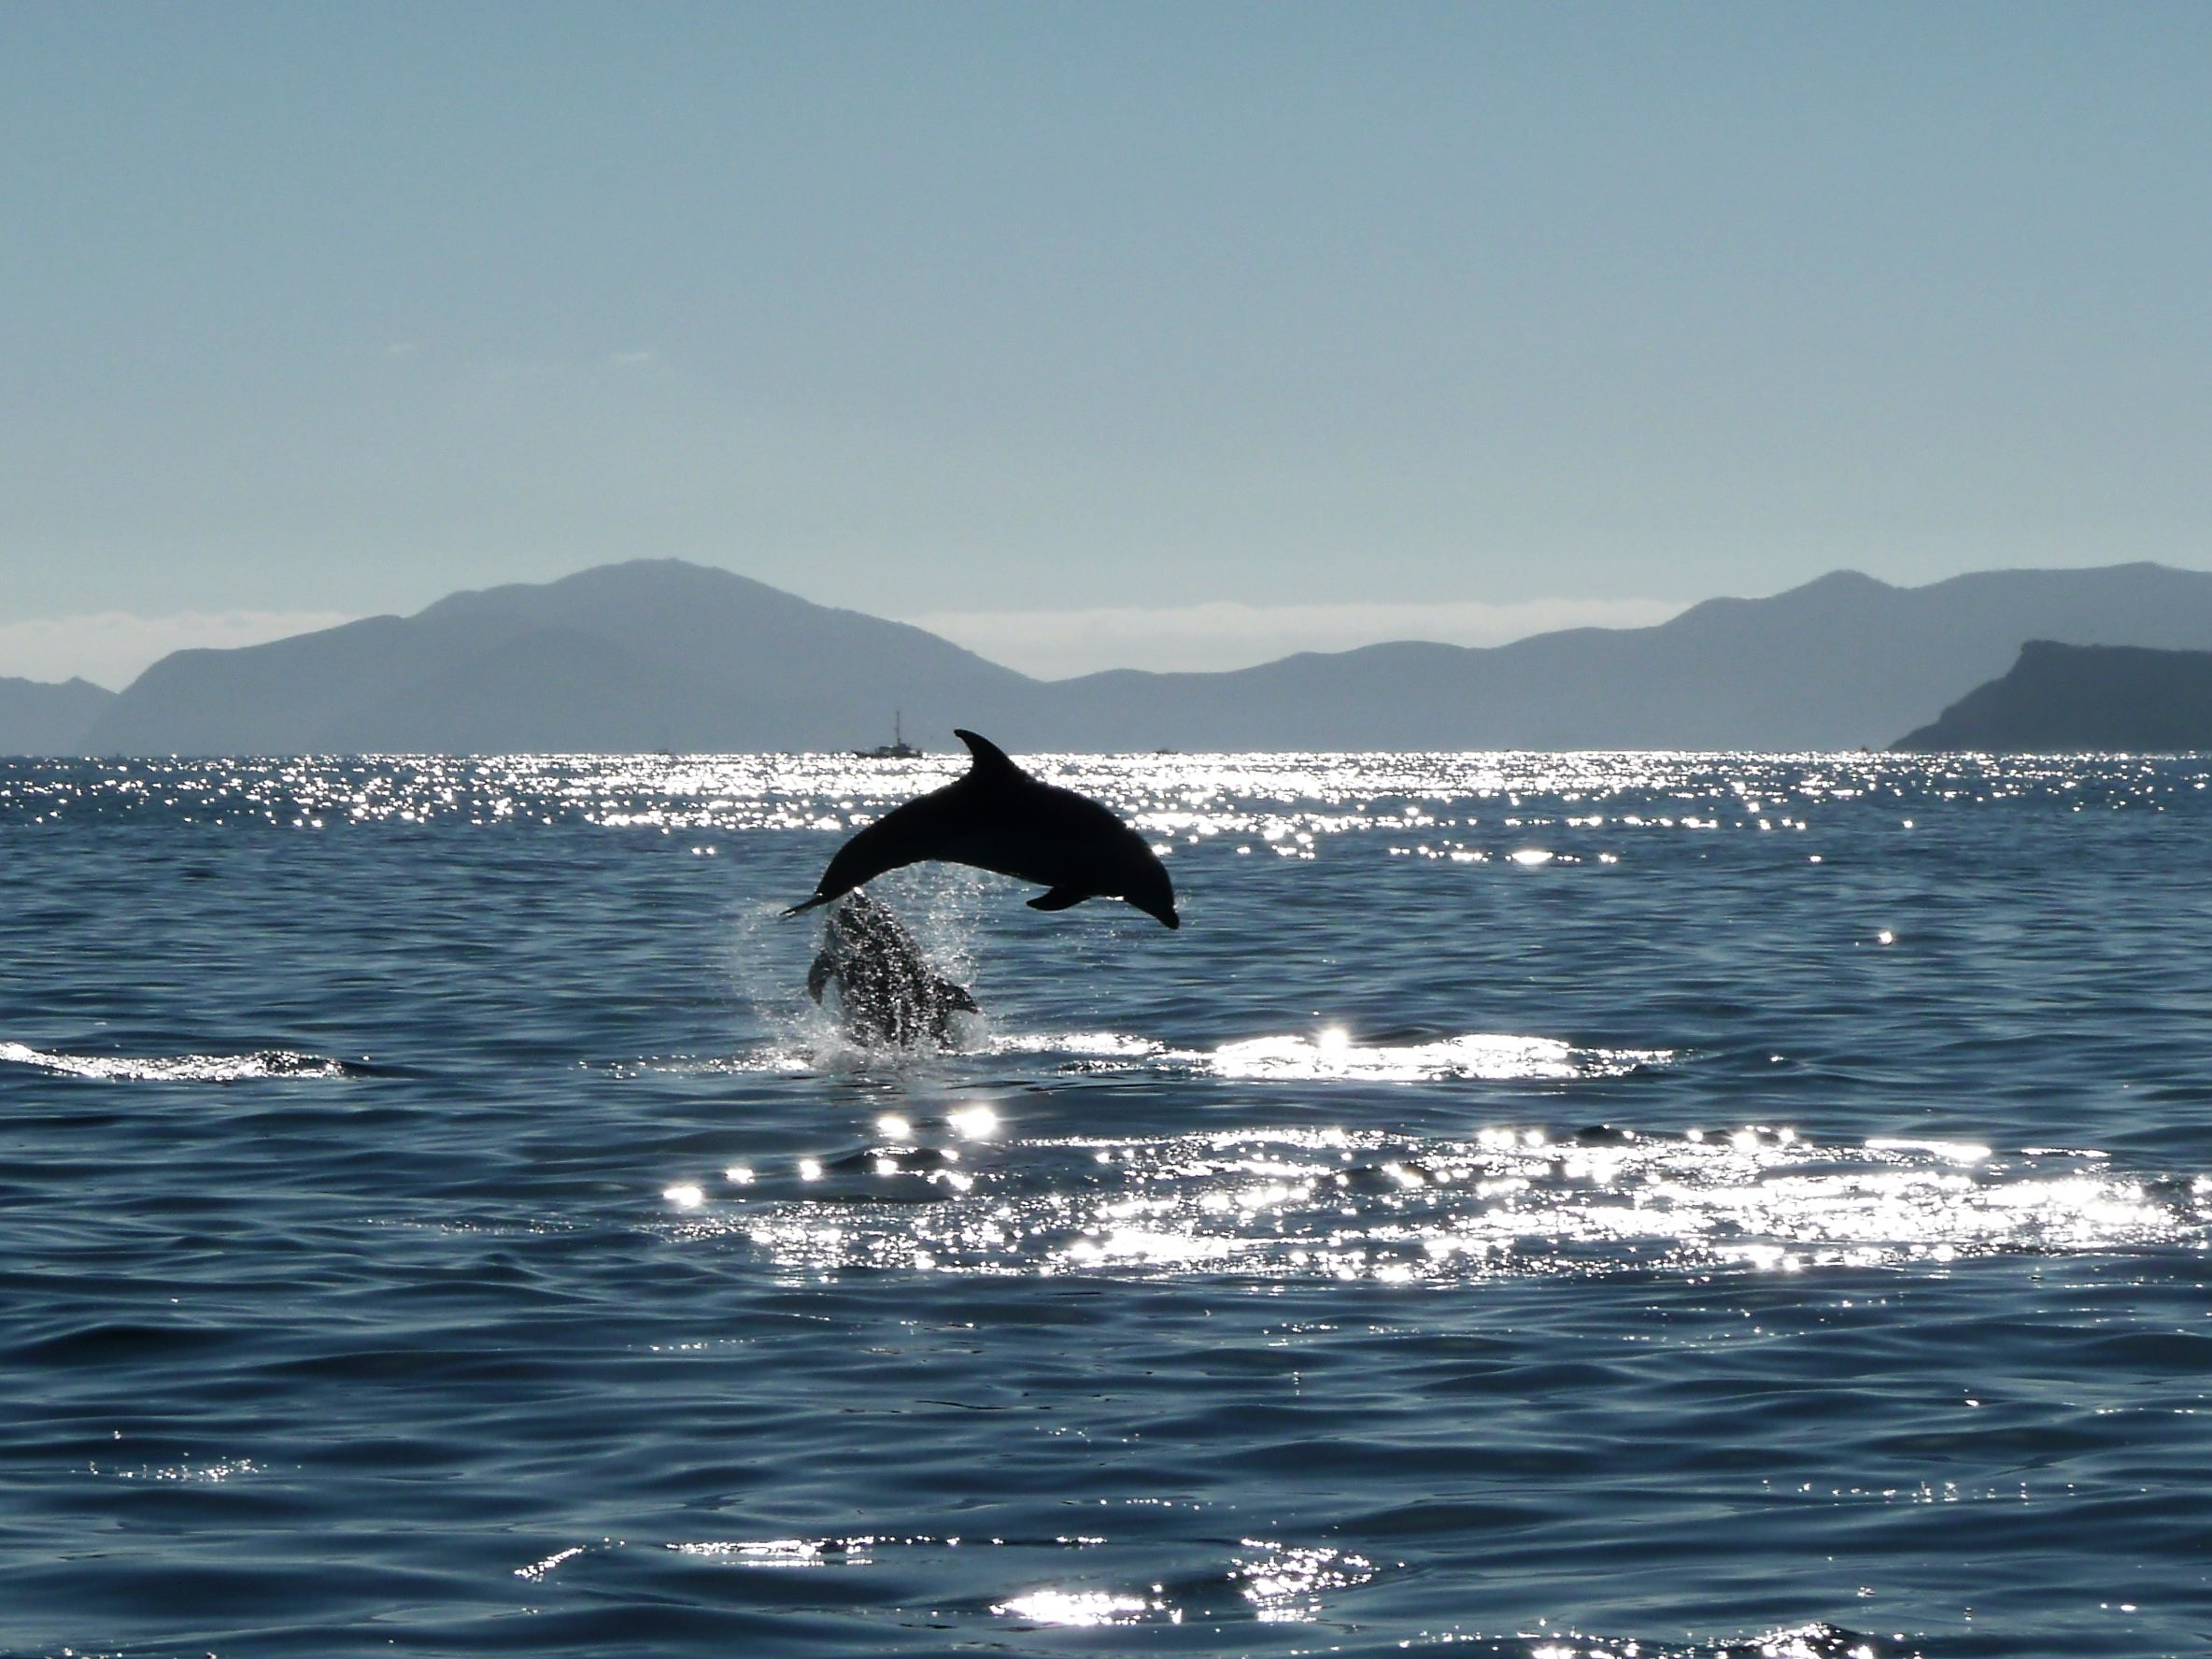 My proudest dolphin picture: shot in the bay of Islands